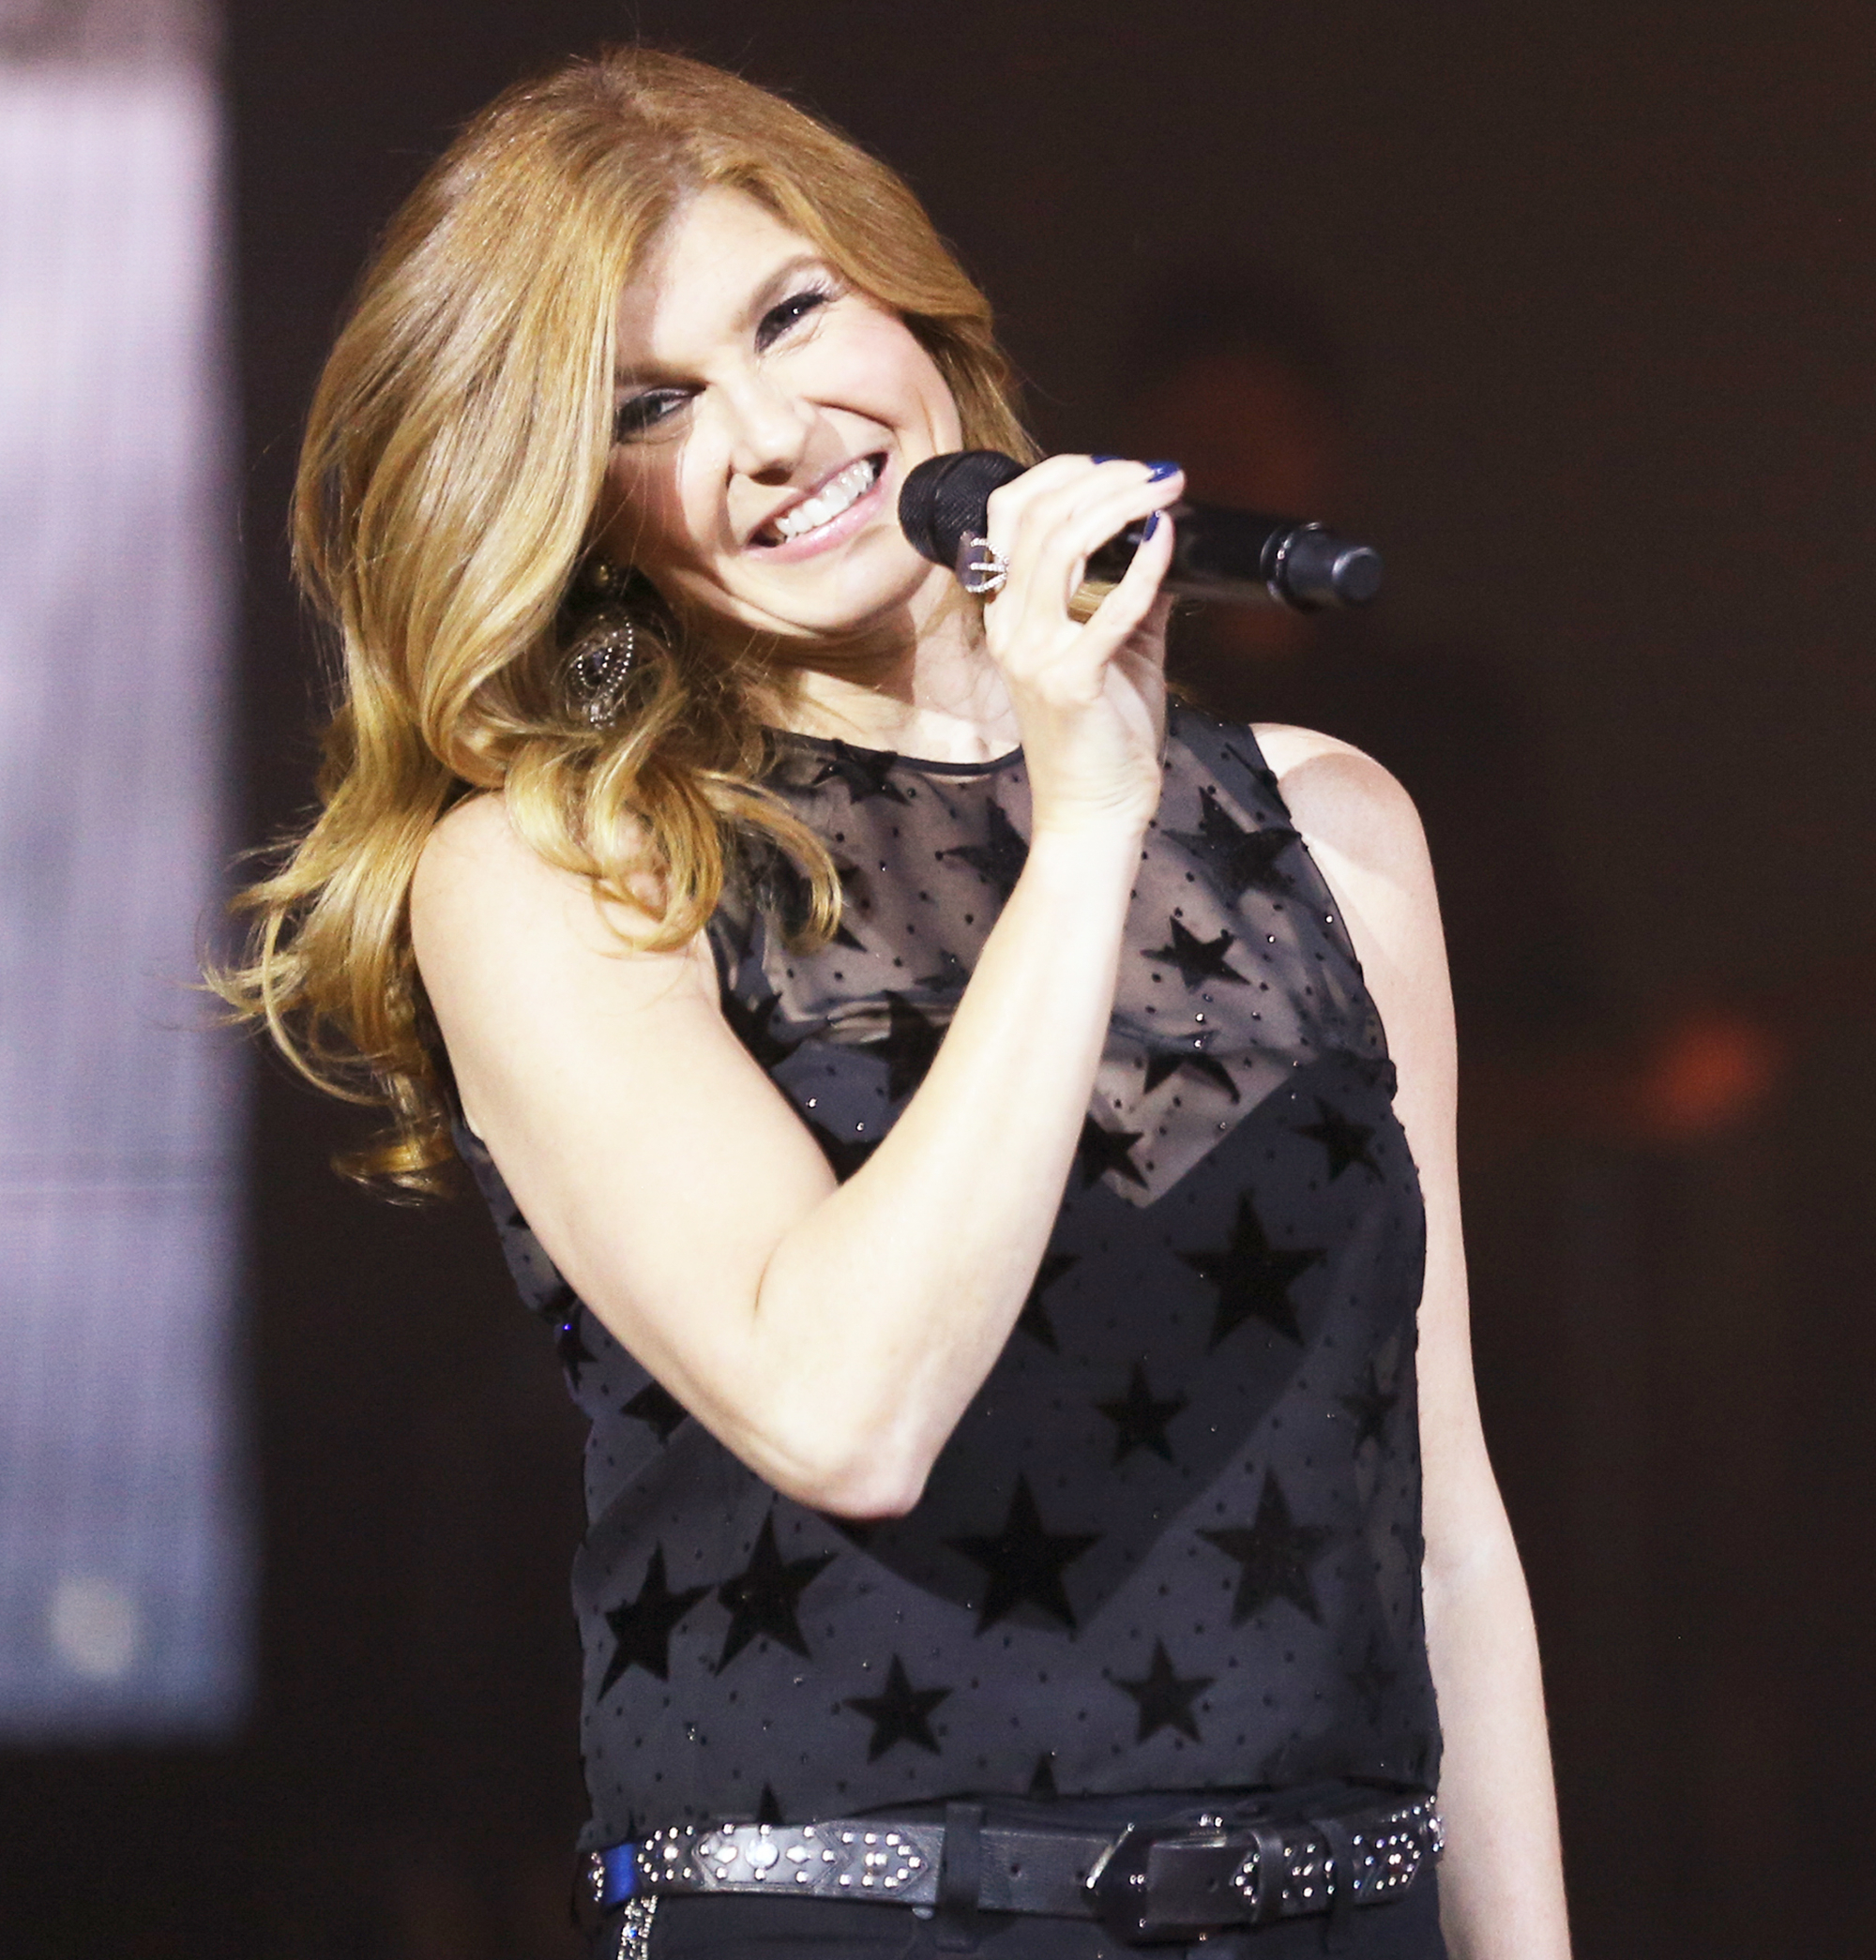 Connie Britton as Rayna Jaymes in Nashville